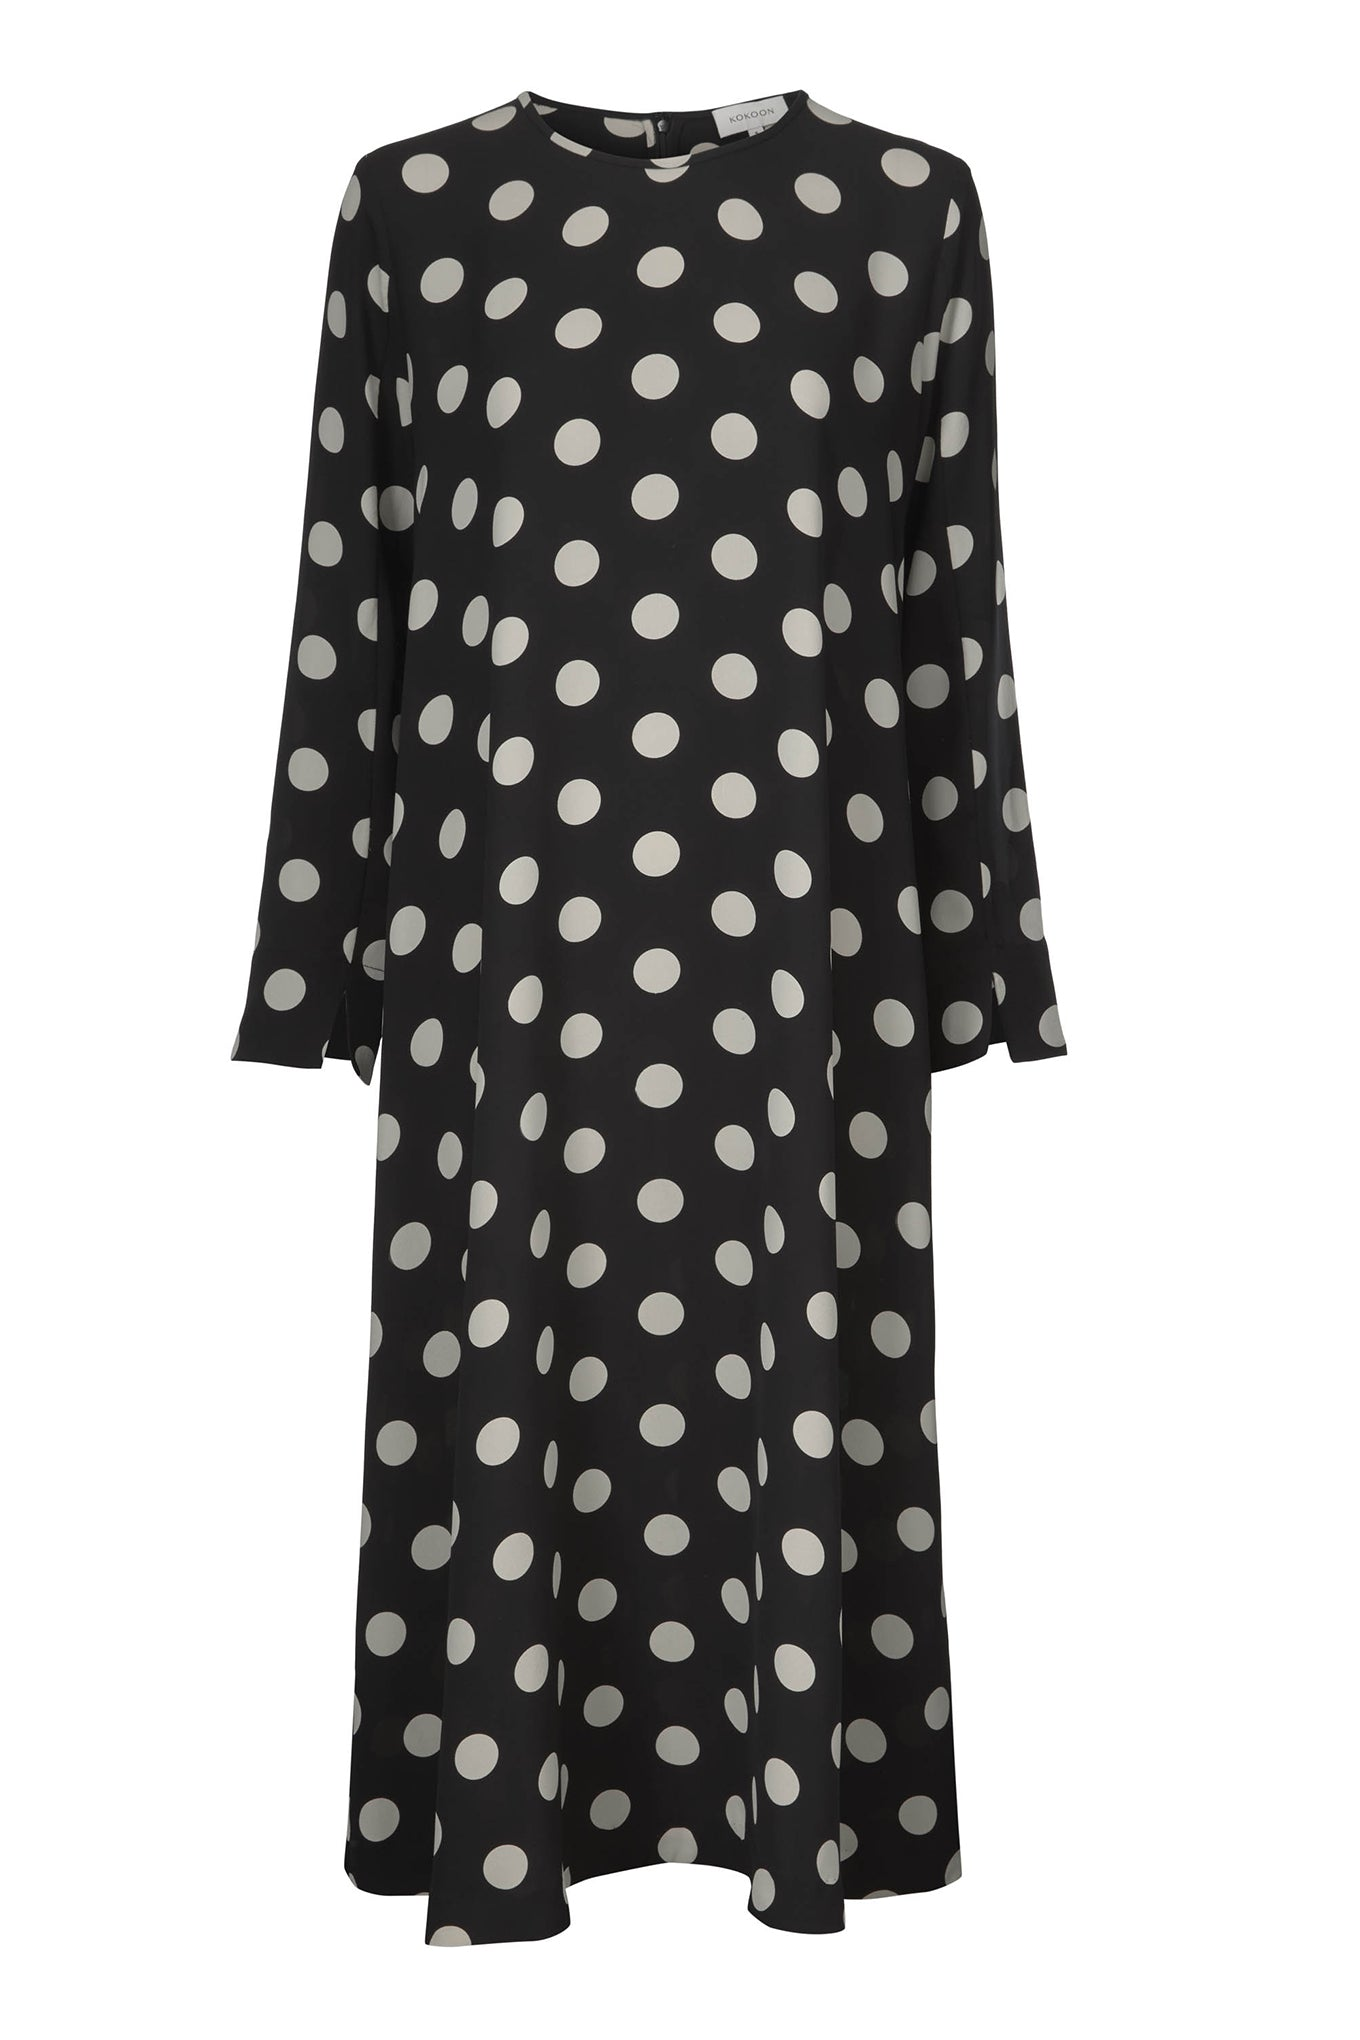 Aba Dress - Medium Dot